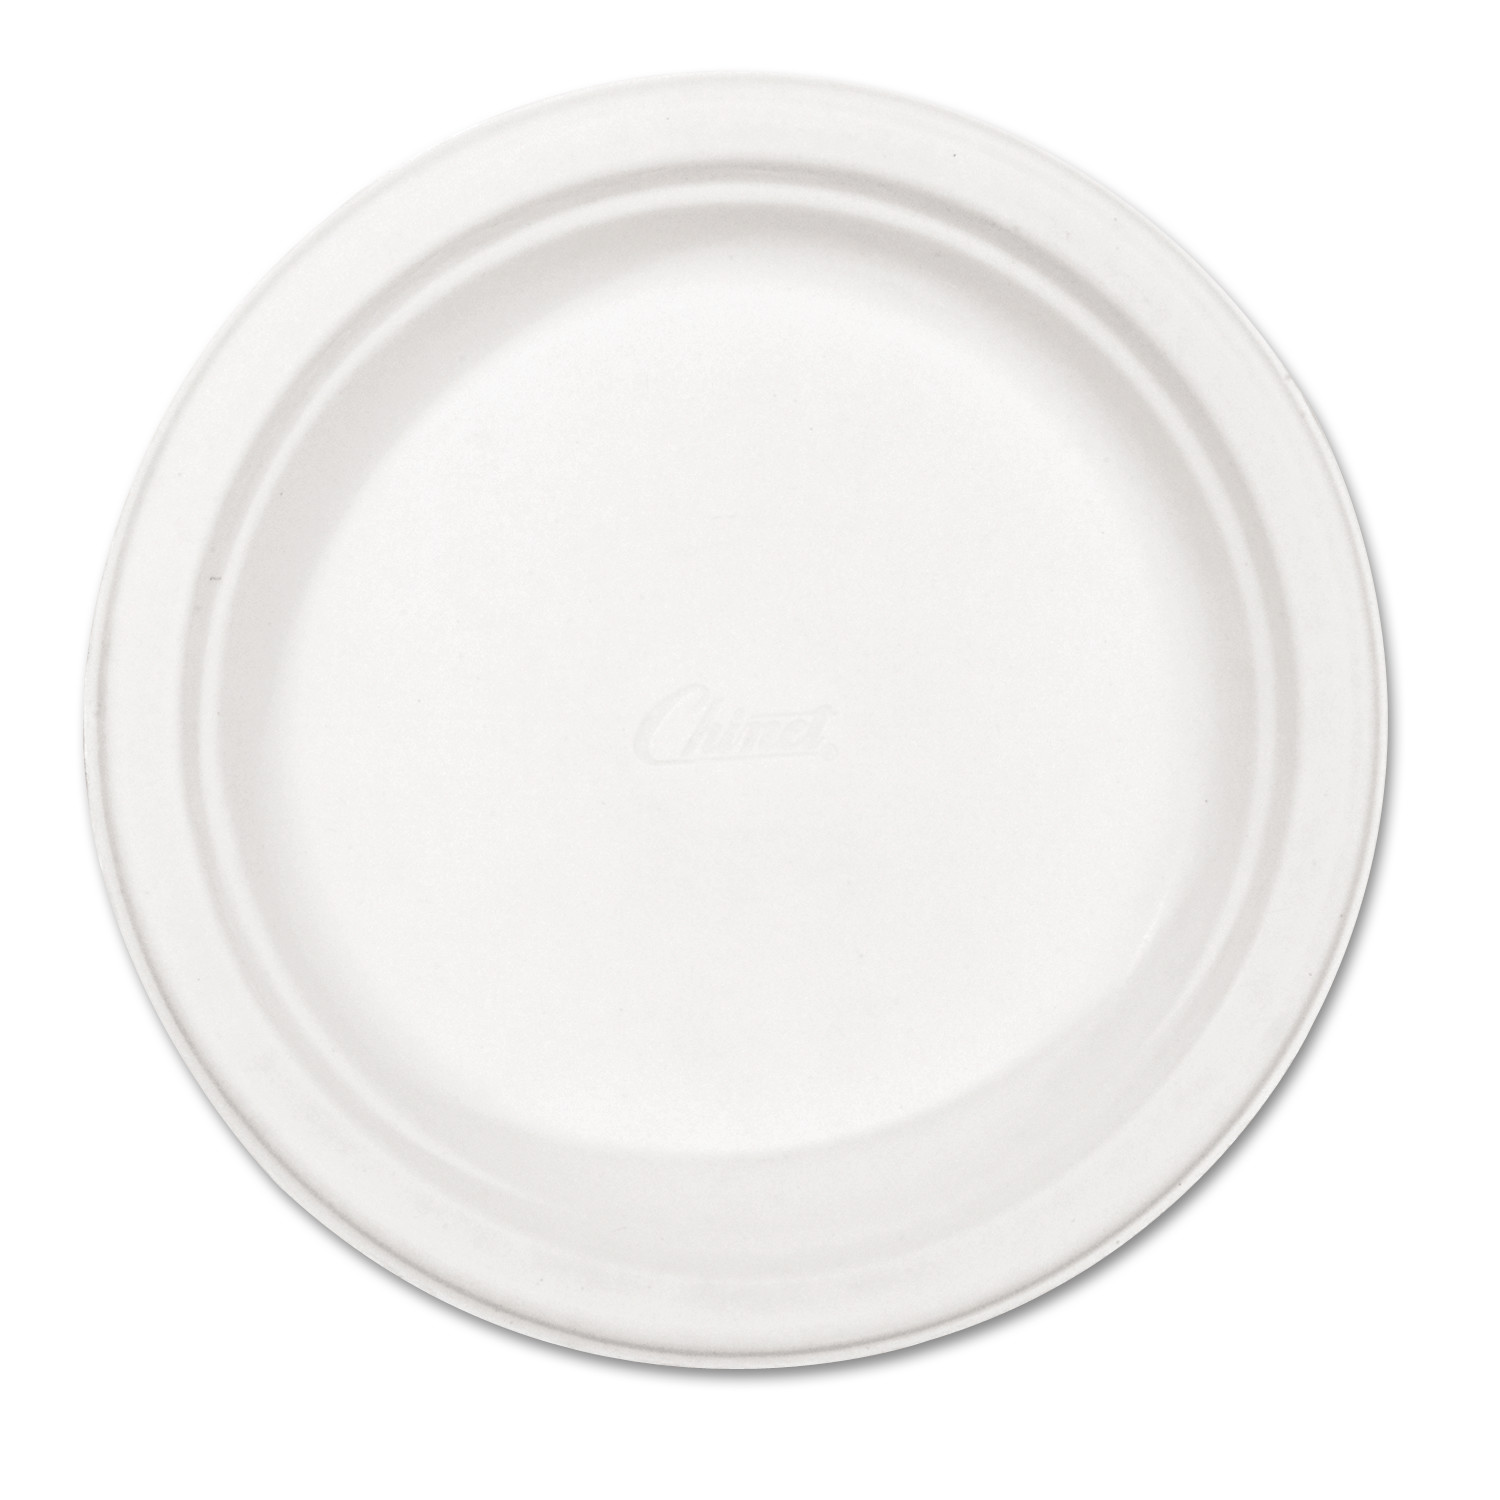 Chinet White Paper Plates 8.75\  Diameter 500 count  sc 1 st  Walmart & Chinet White Paper Plates 8.75\